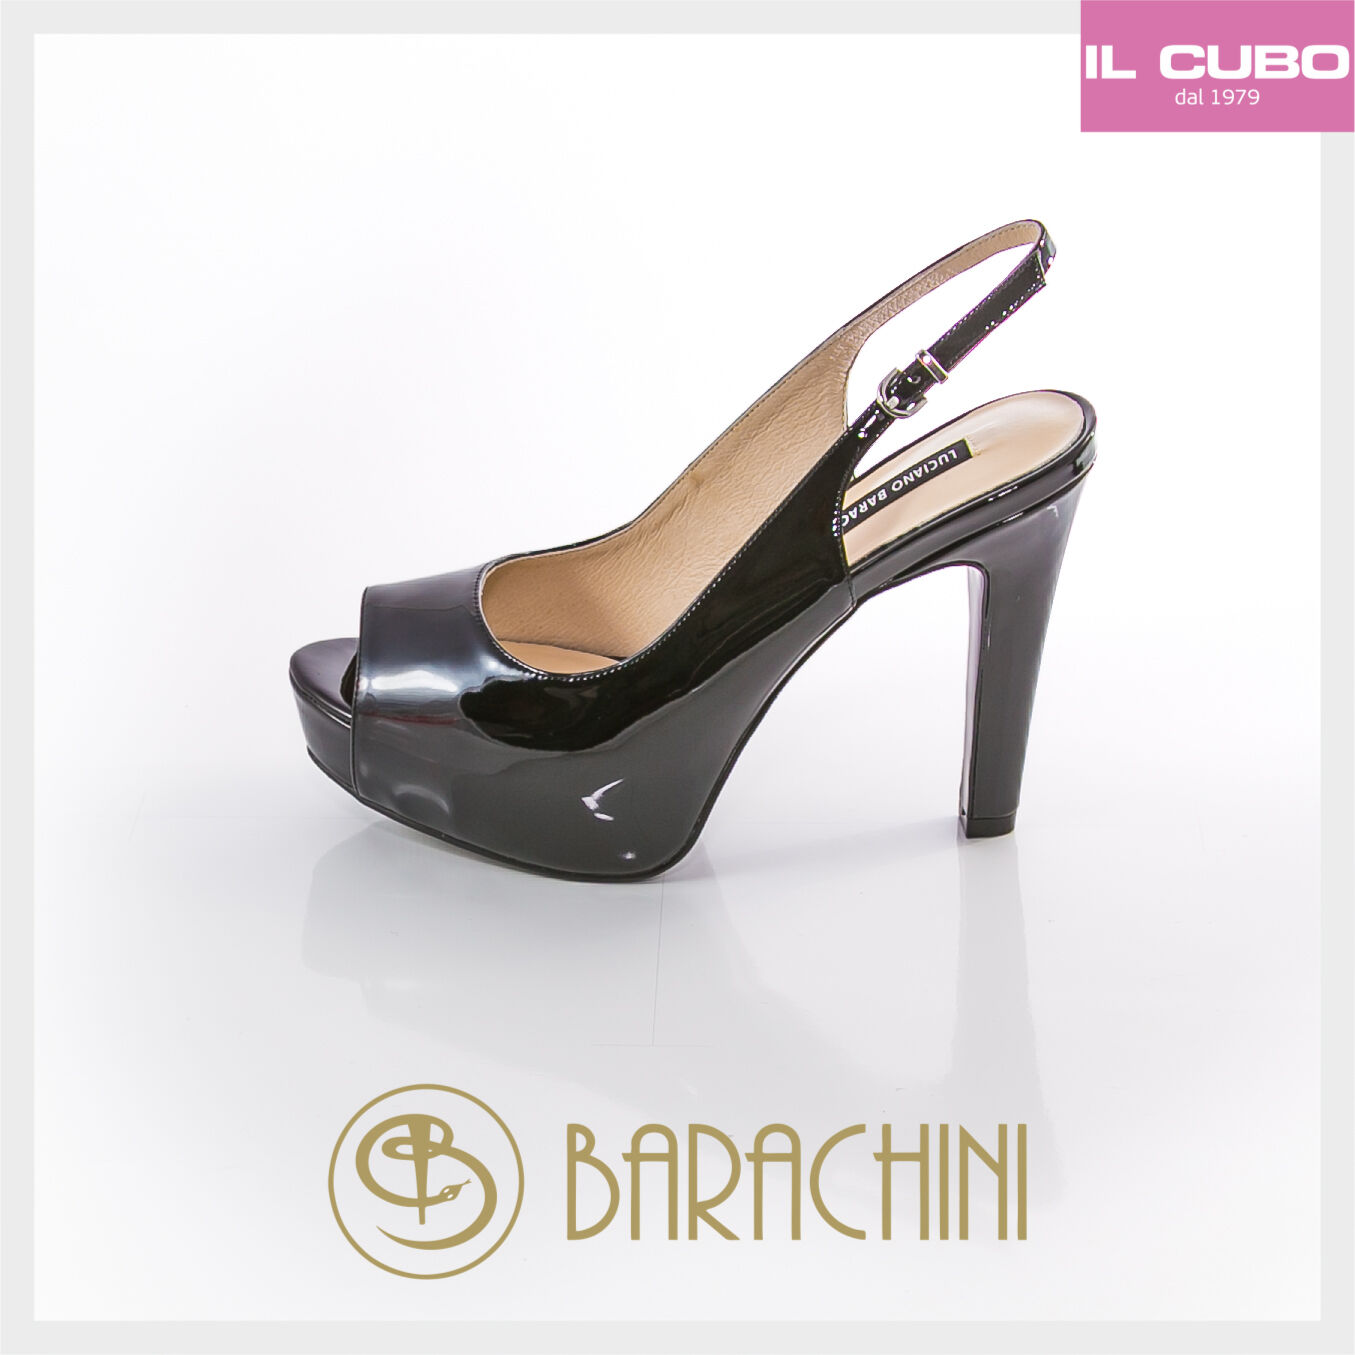 LUCIANO BARACHINI SANDALO VERNICE COLORE NERO TACCO H 12 CM NEU COLLECTION